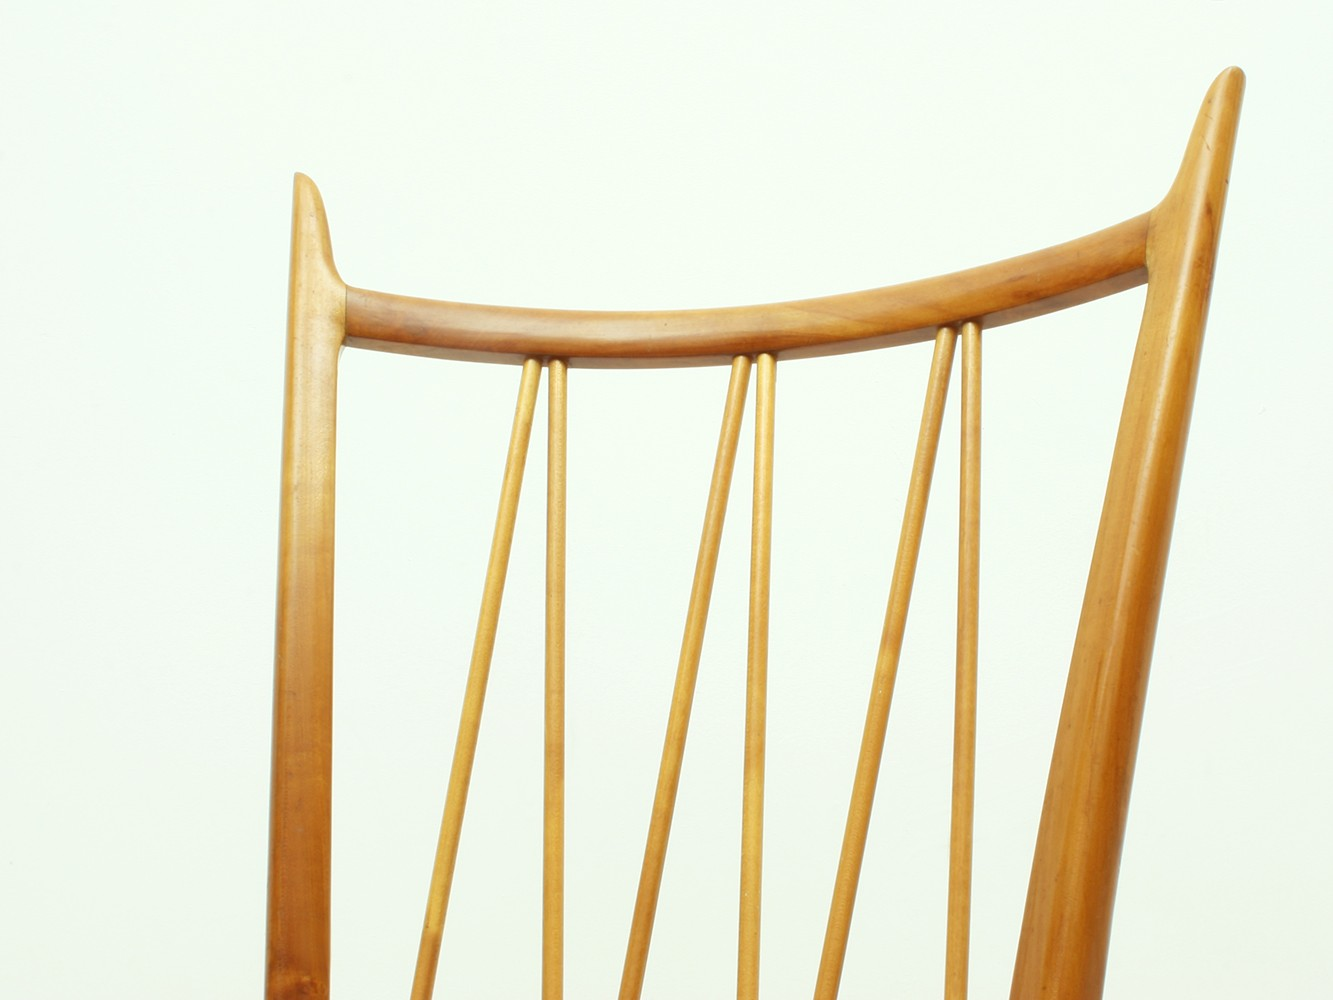 Set Of 4 Cherry Wood Dining Chairs - 1950s - Design Market